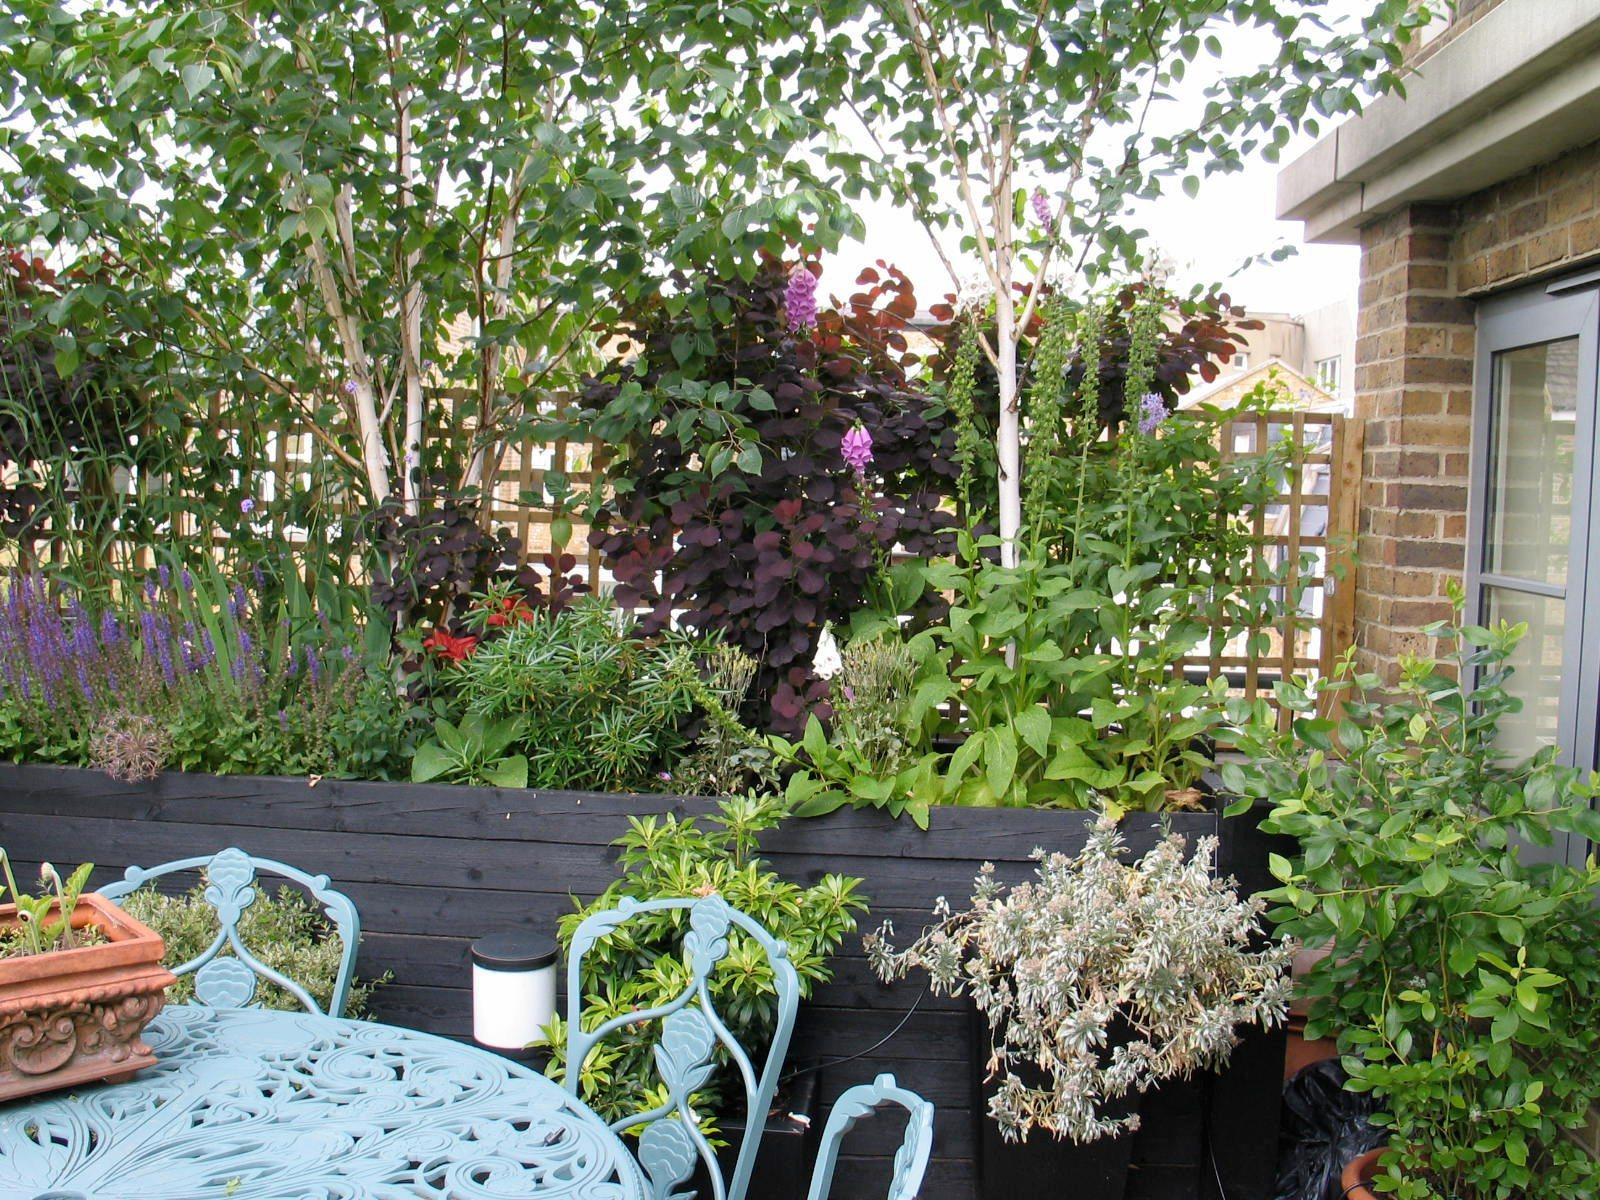 A wide range of perennials, shrubs and trees is planted here in large, black, wooden planters.